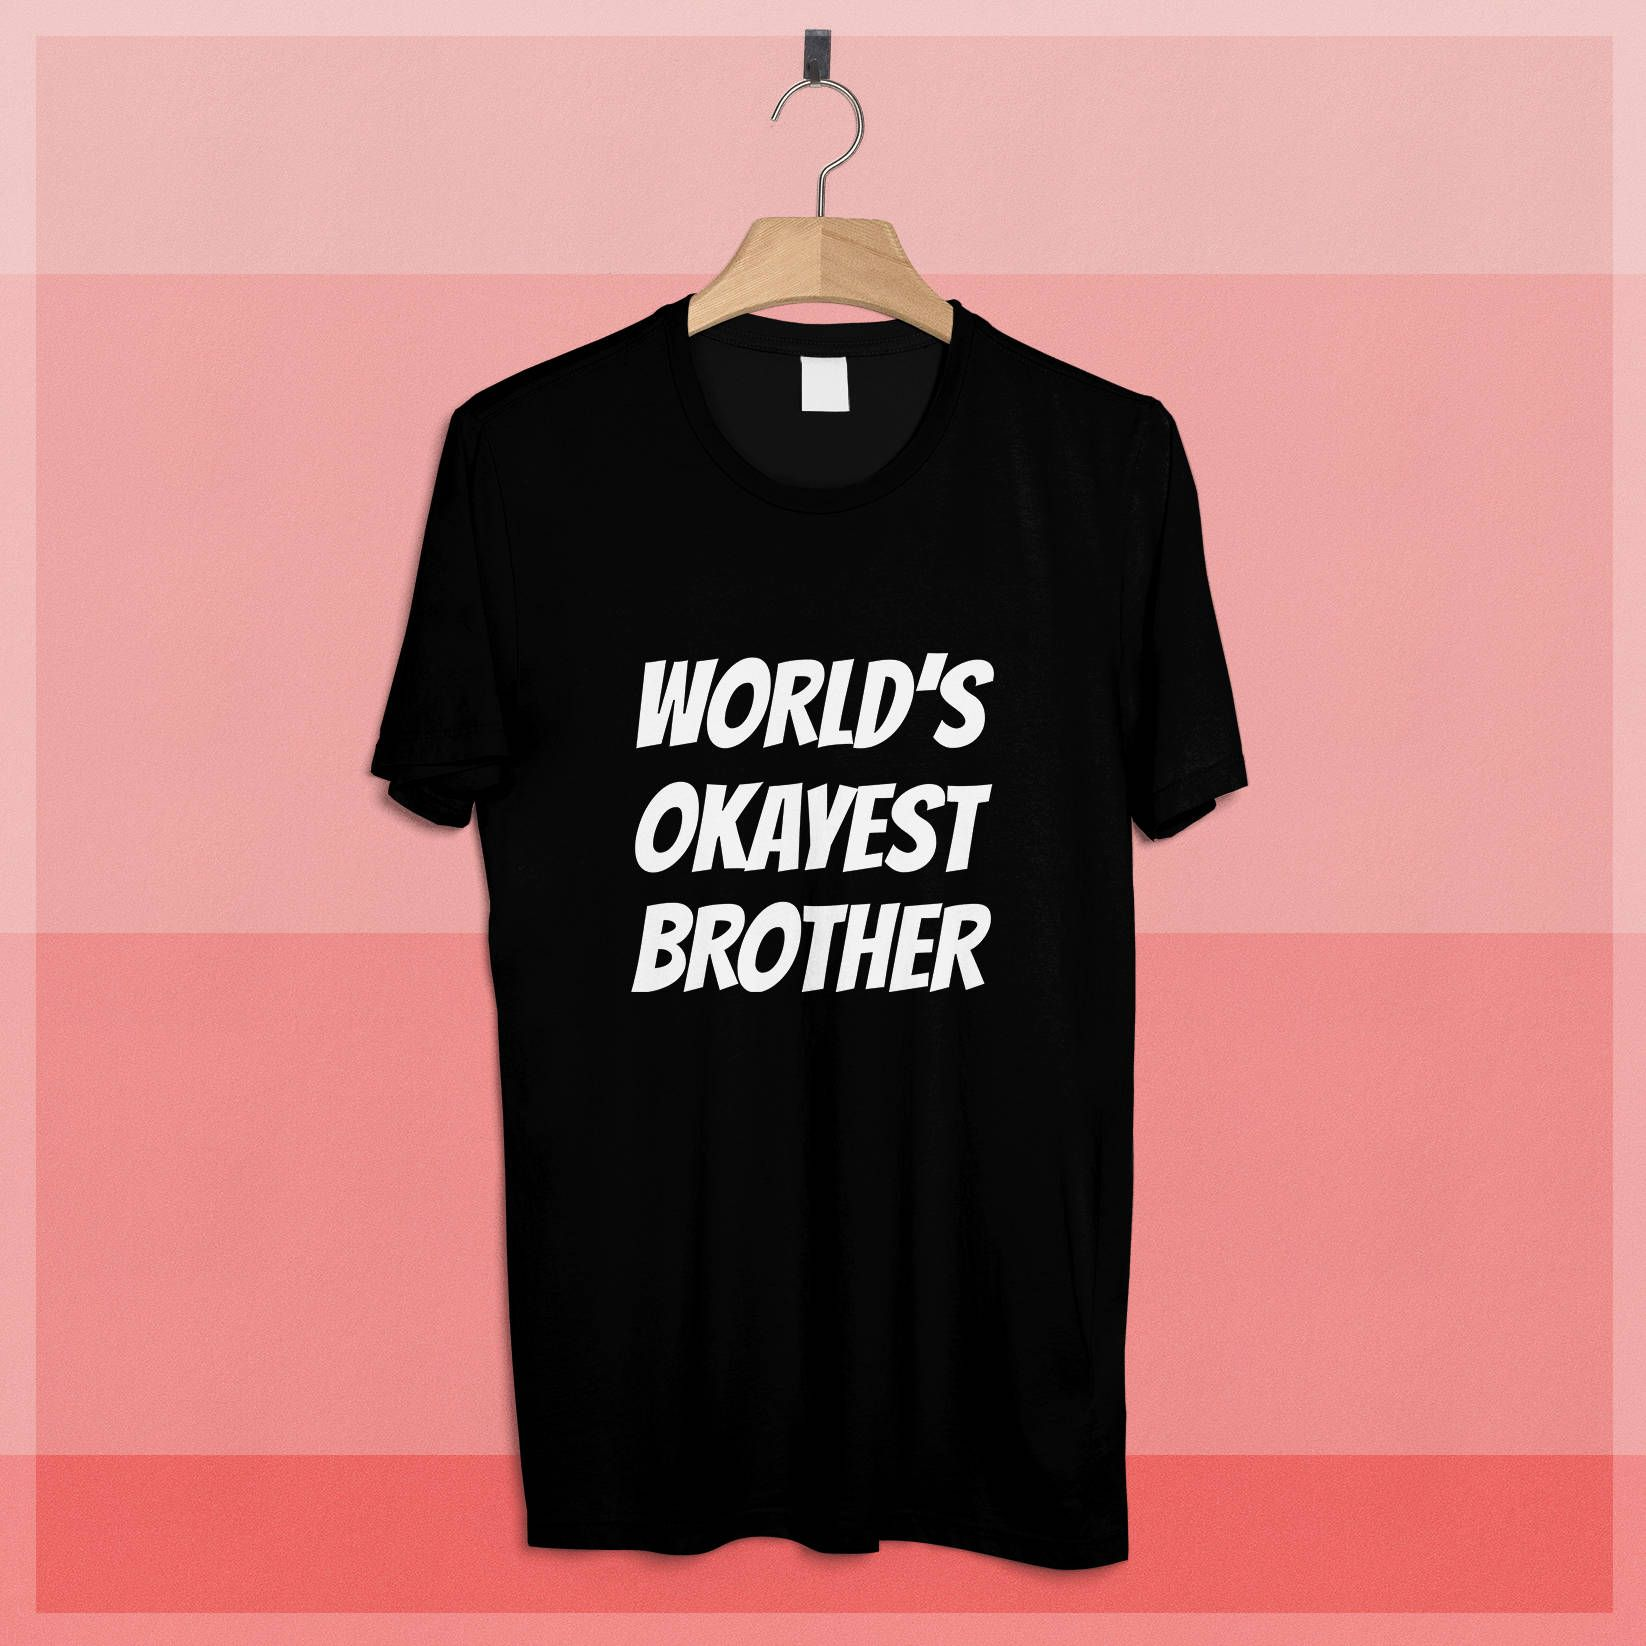 6f569c9c World's Okayest Brother T-Shirt - World's Okayest Shirt Series - Funny  Shirts With Sayings by CSquaredVisuals on Etsy